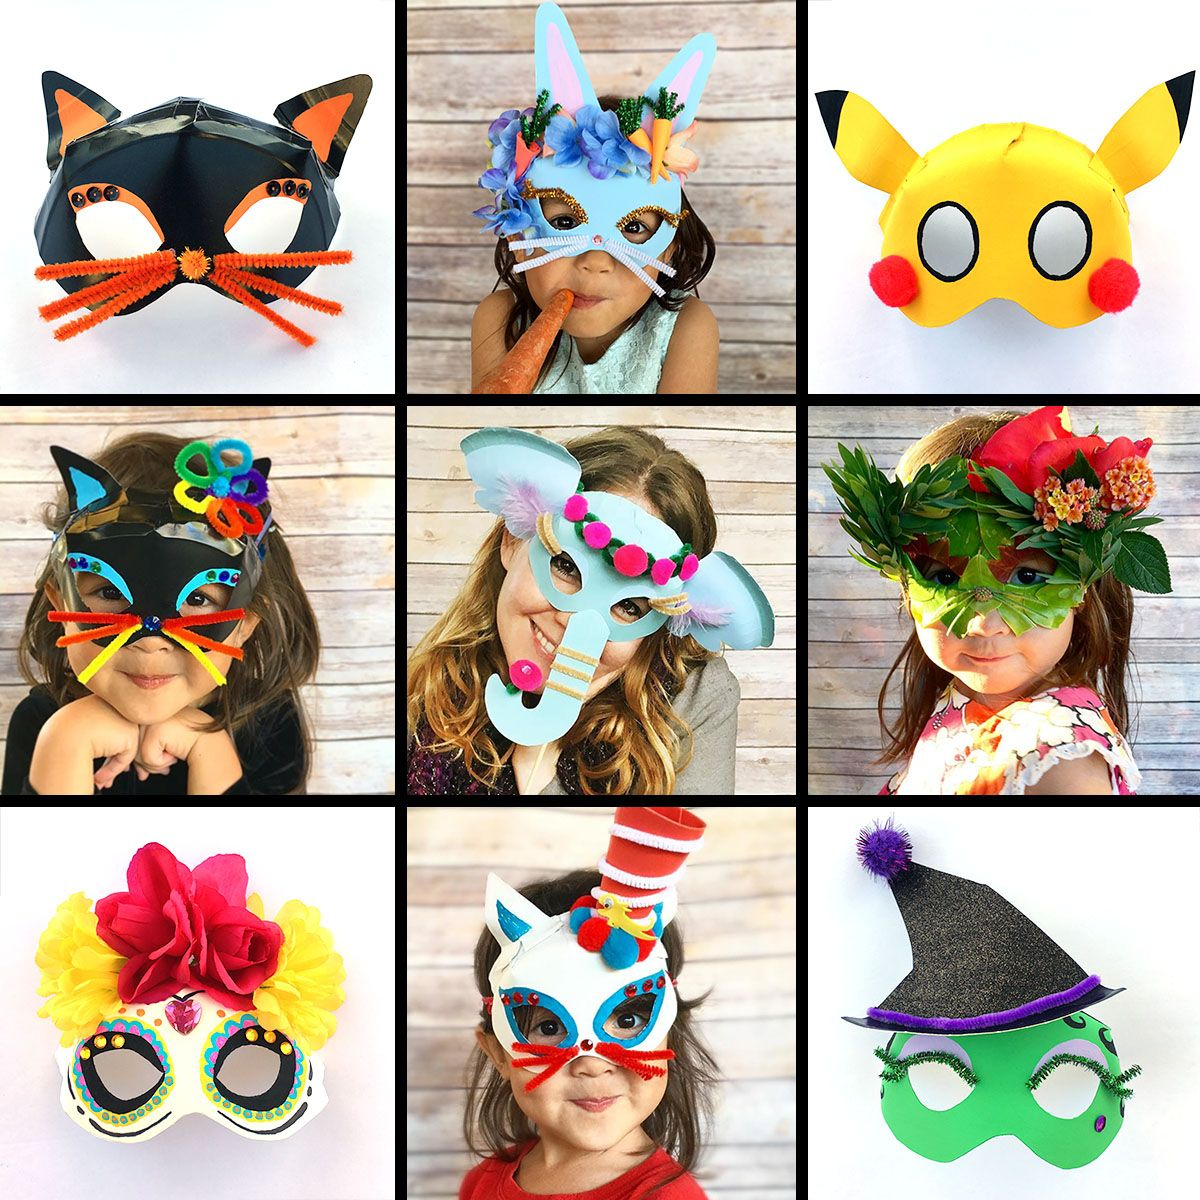 Simple Halloween Masks.Pin On Kids Holiday Crafts And Activities